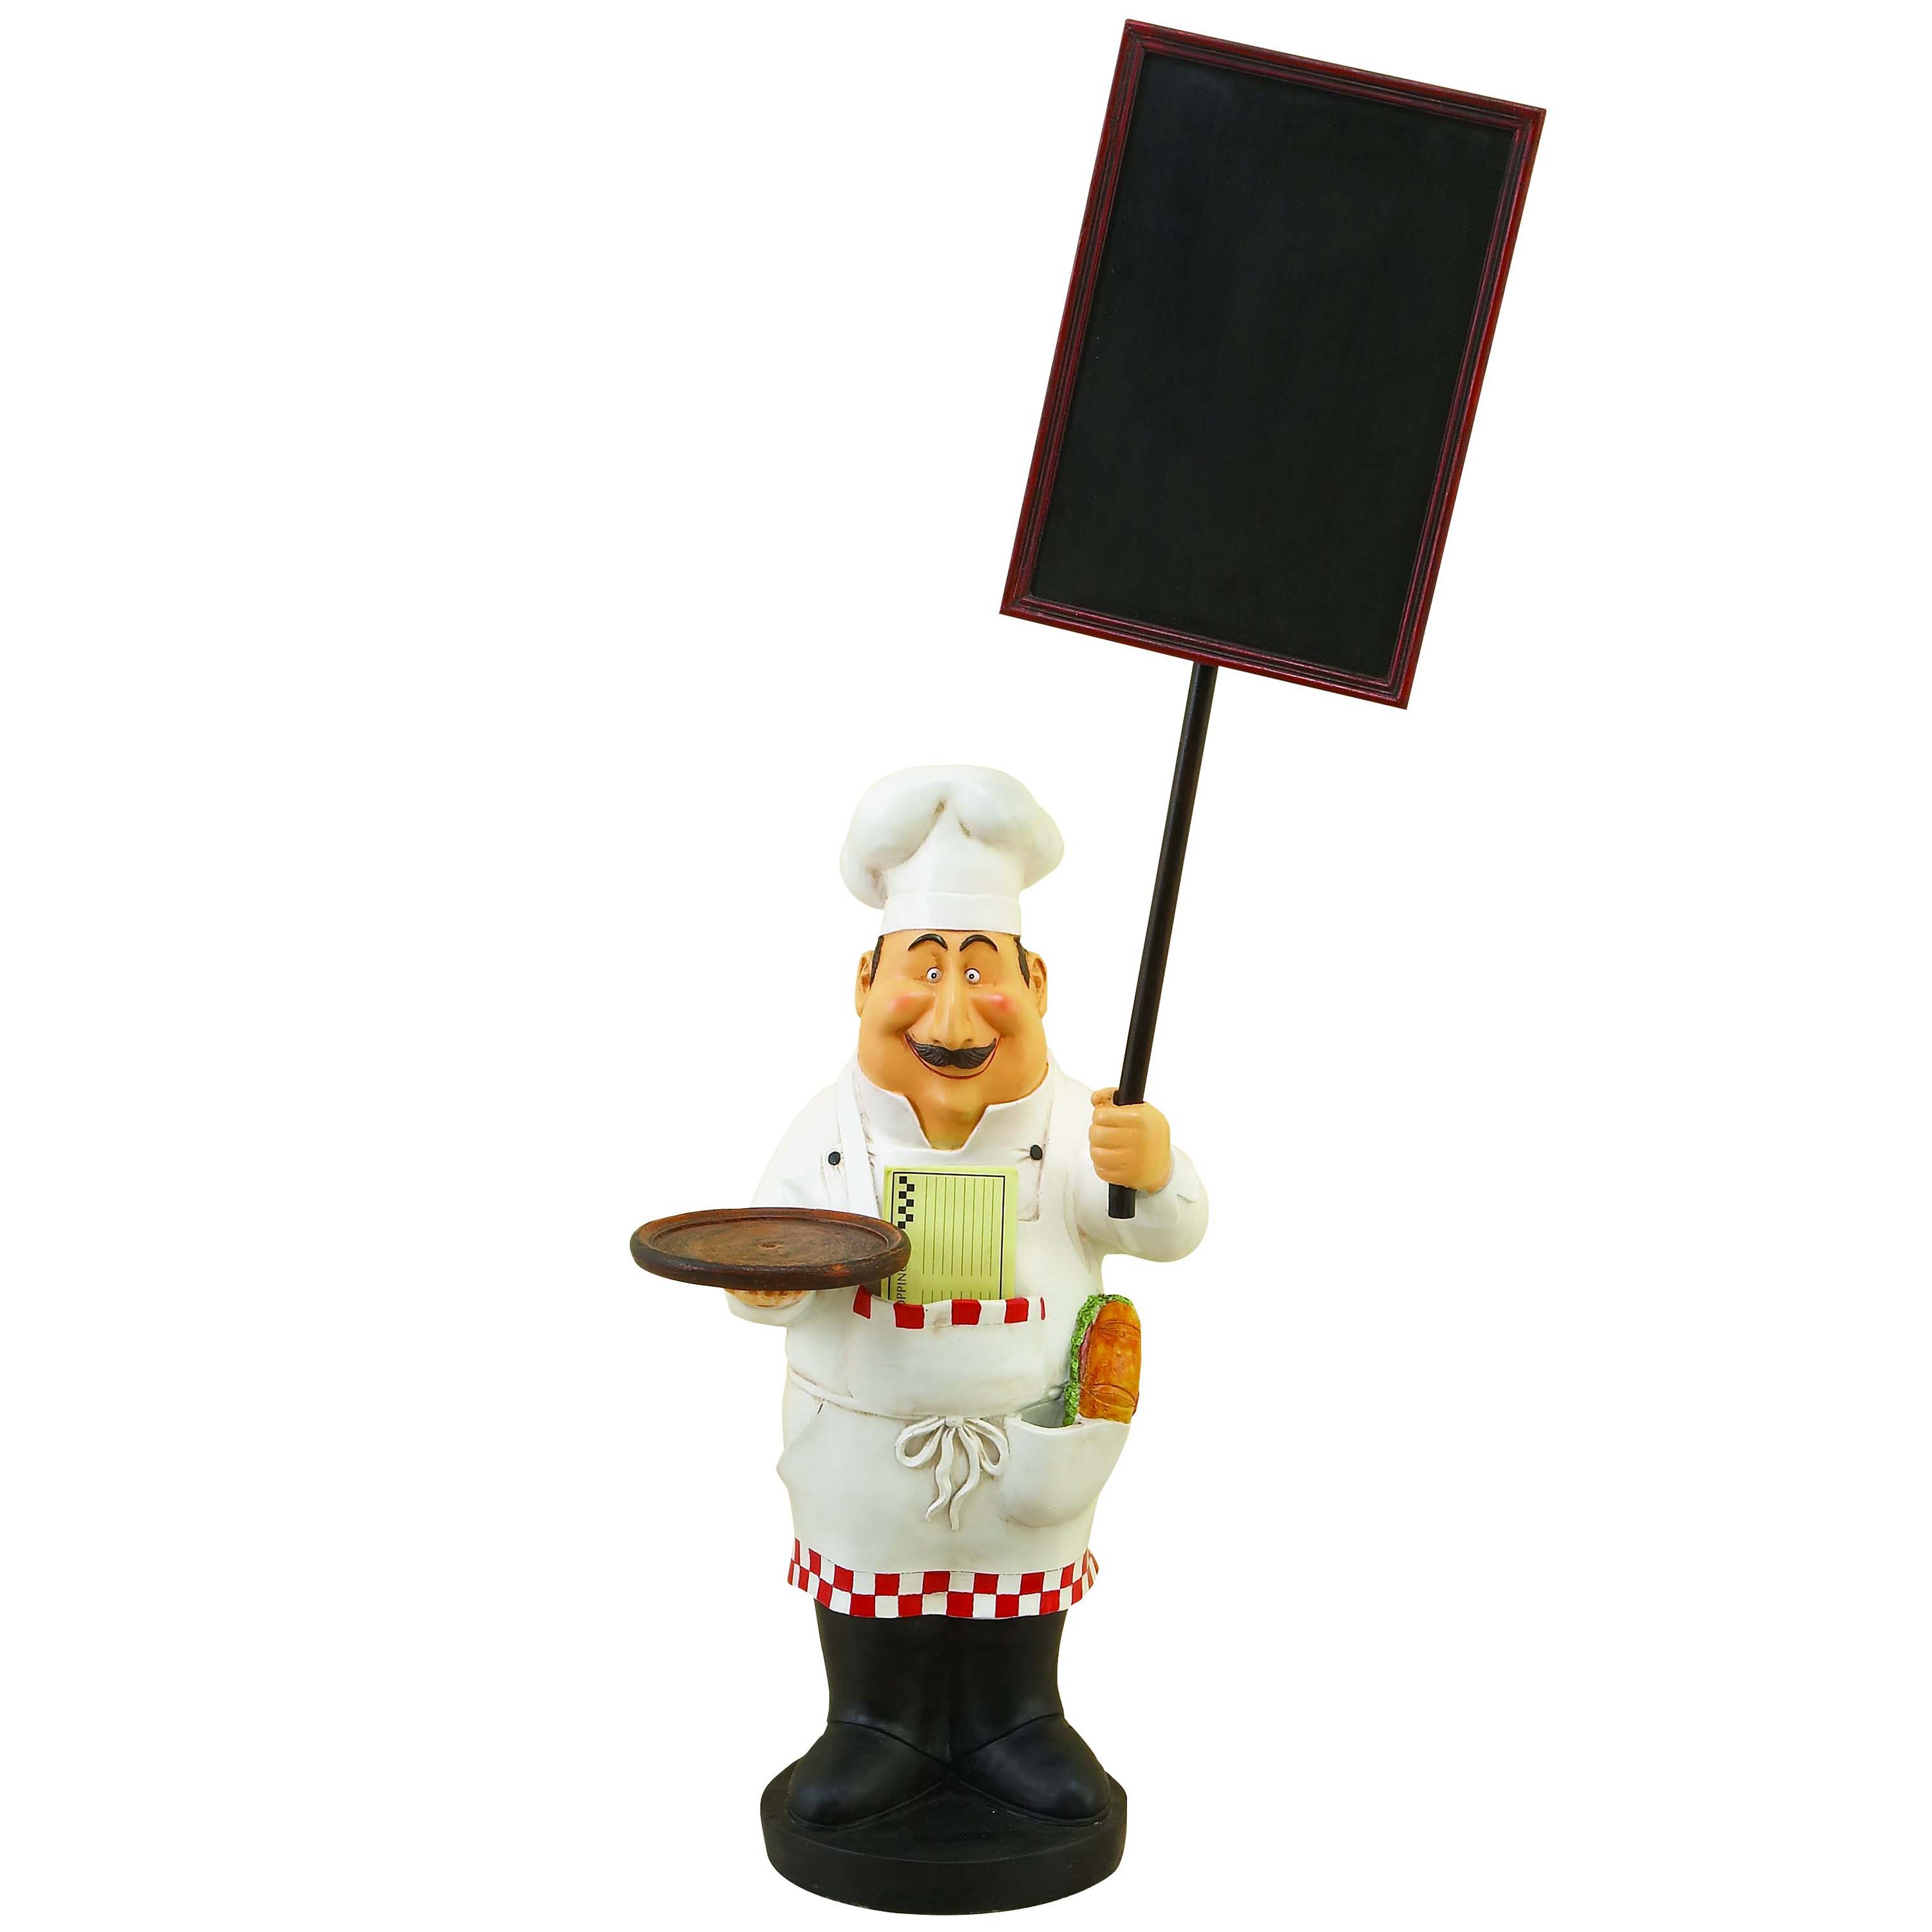 Large french chef figurine with welcome chalkboard kitchen